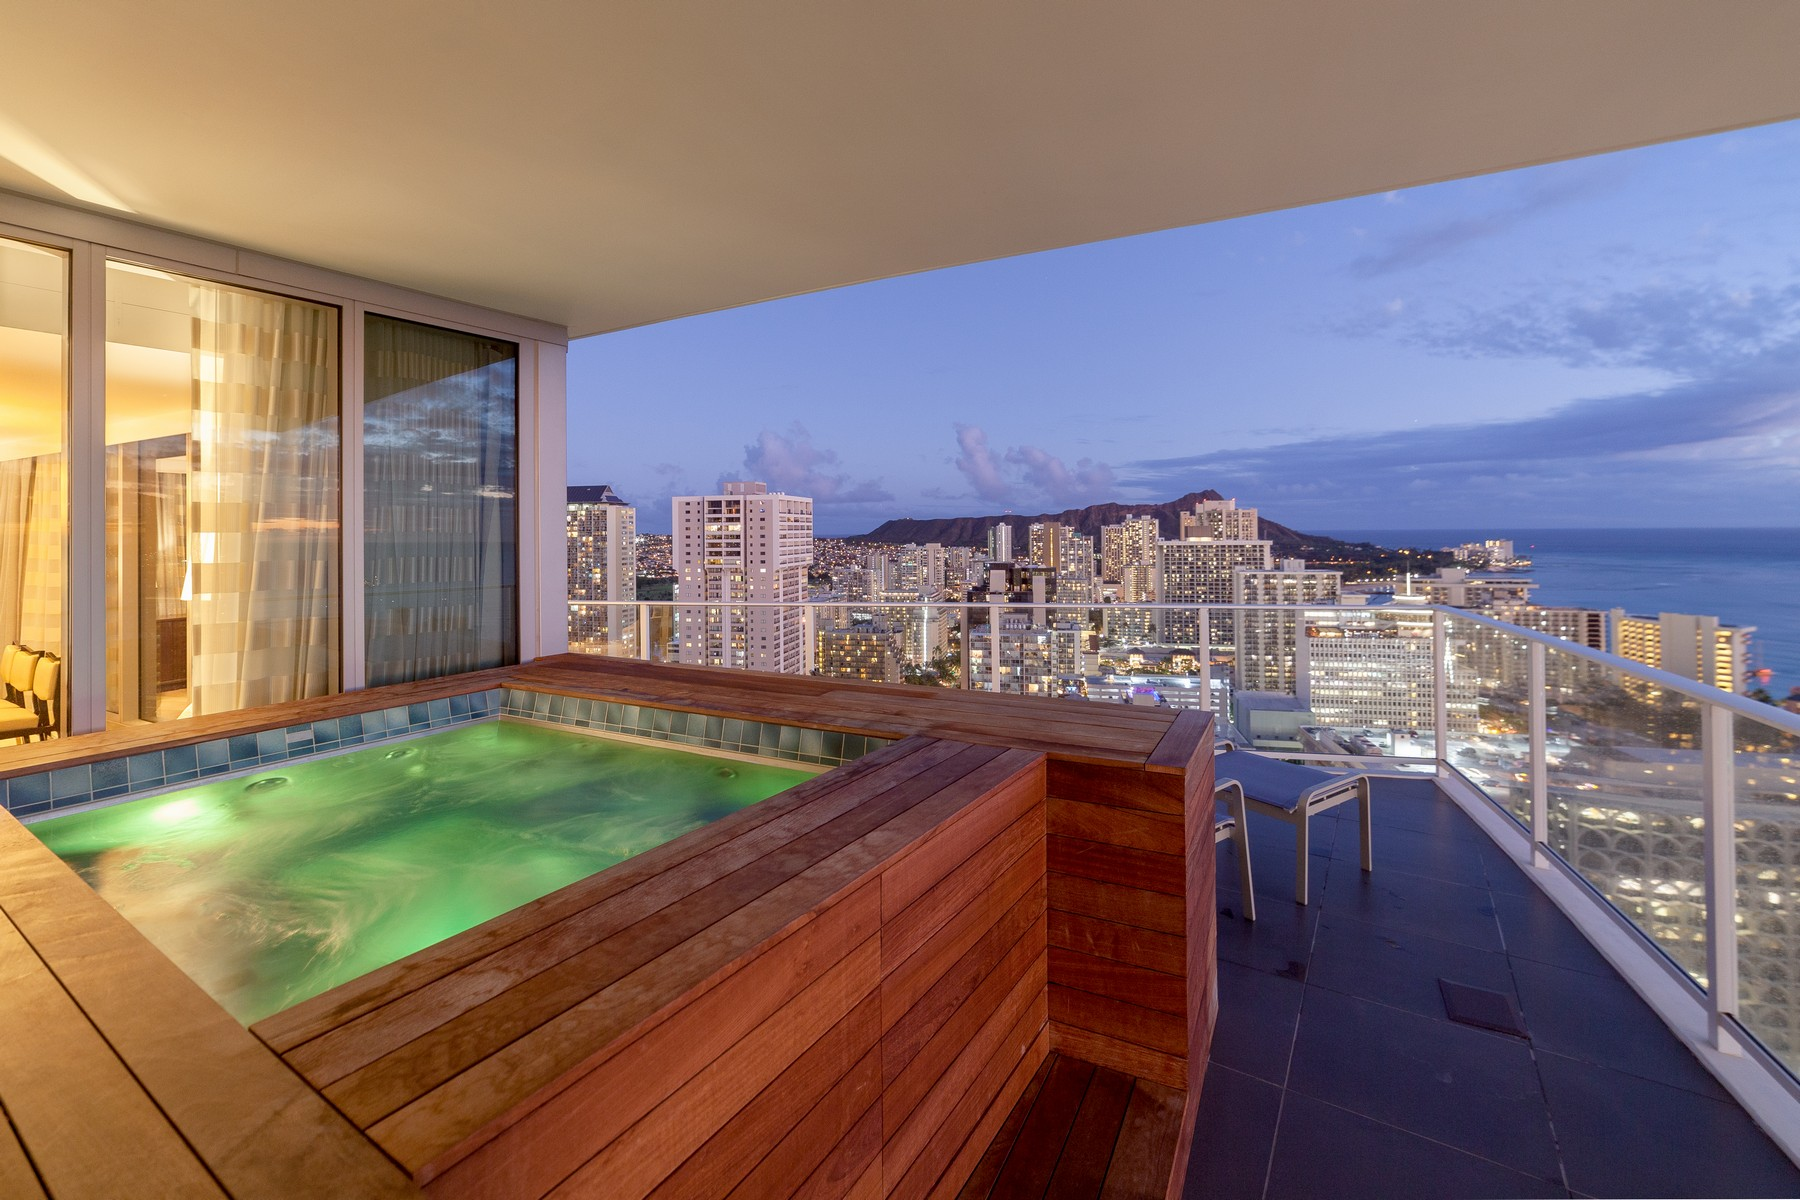 Condominiums 為 出售 在 Spectacular Ocean Views 2120 Lauula St #3506, Honolulu, 夏威夷 96815 美國